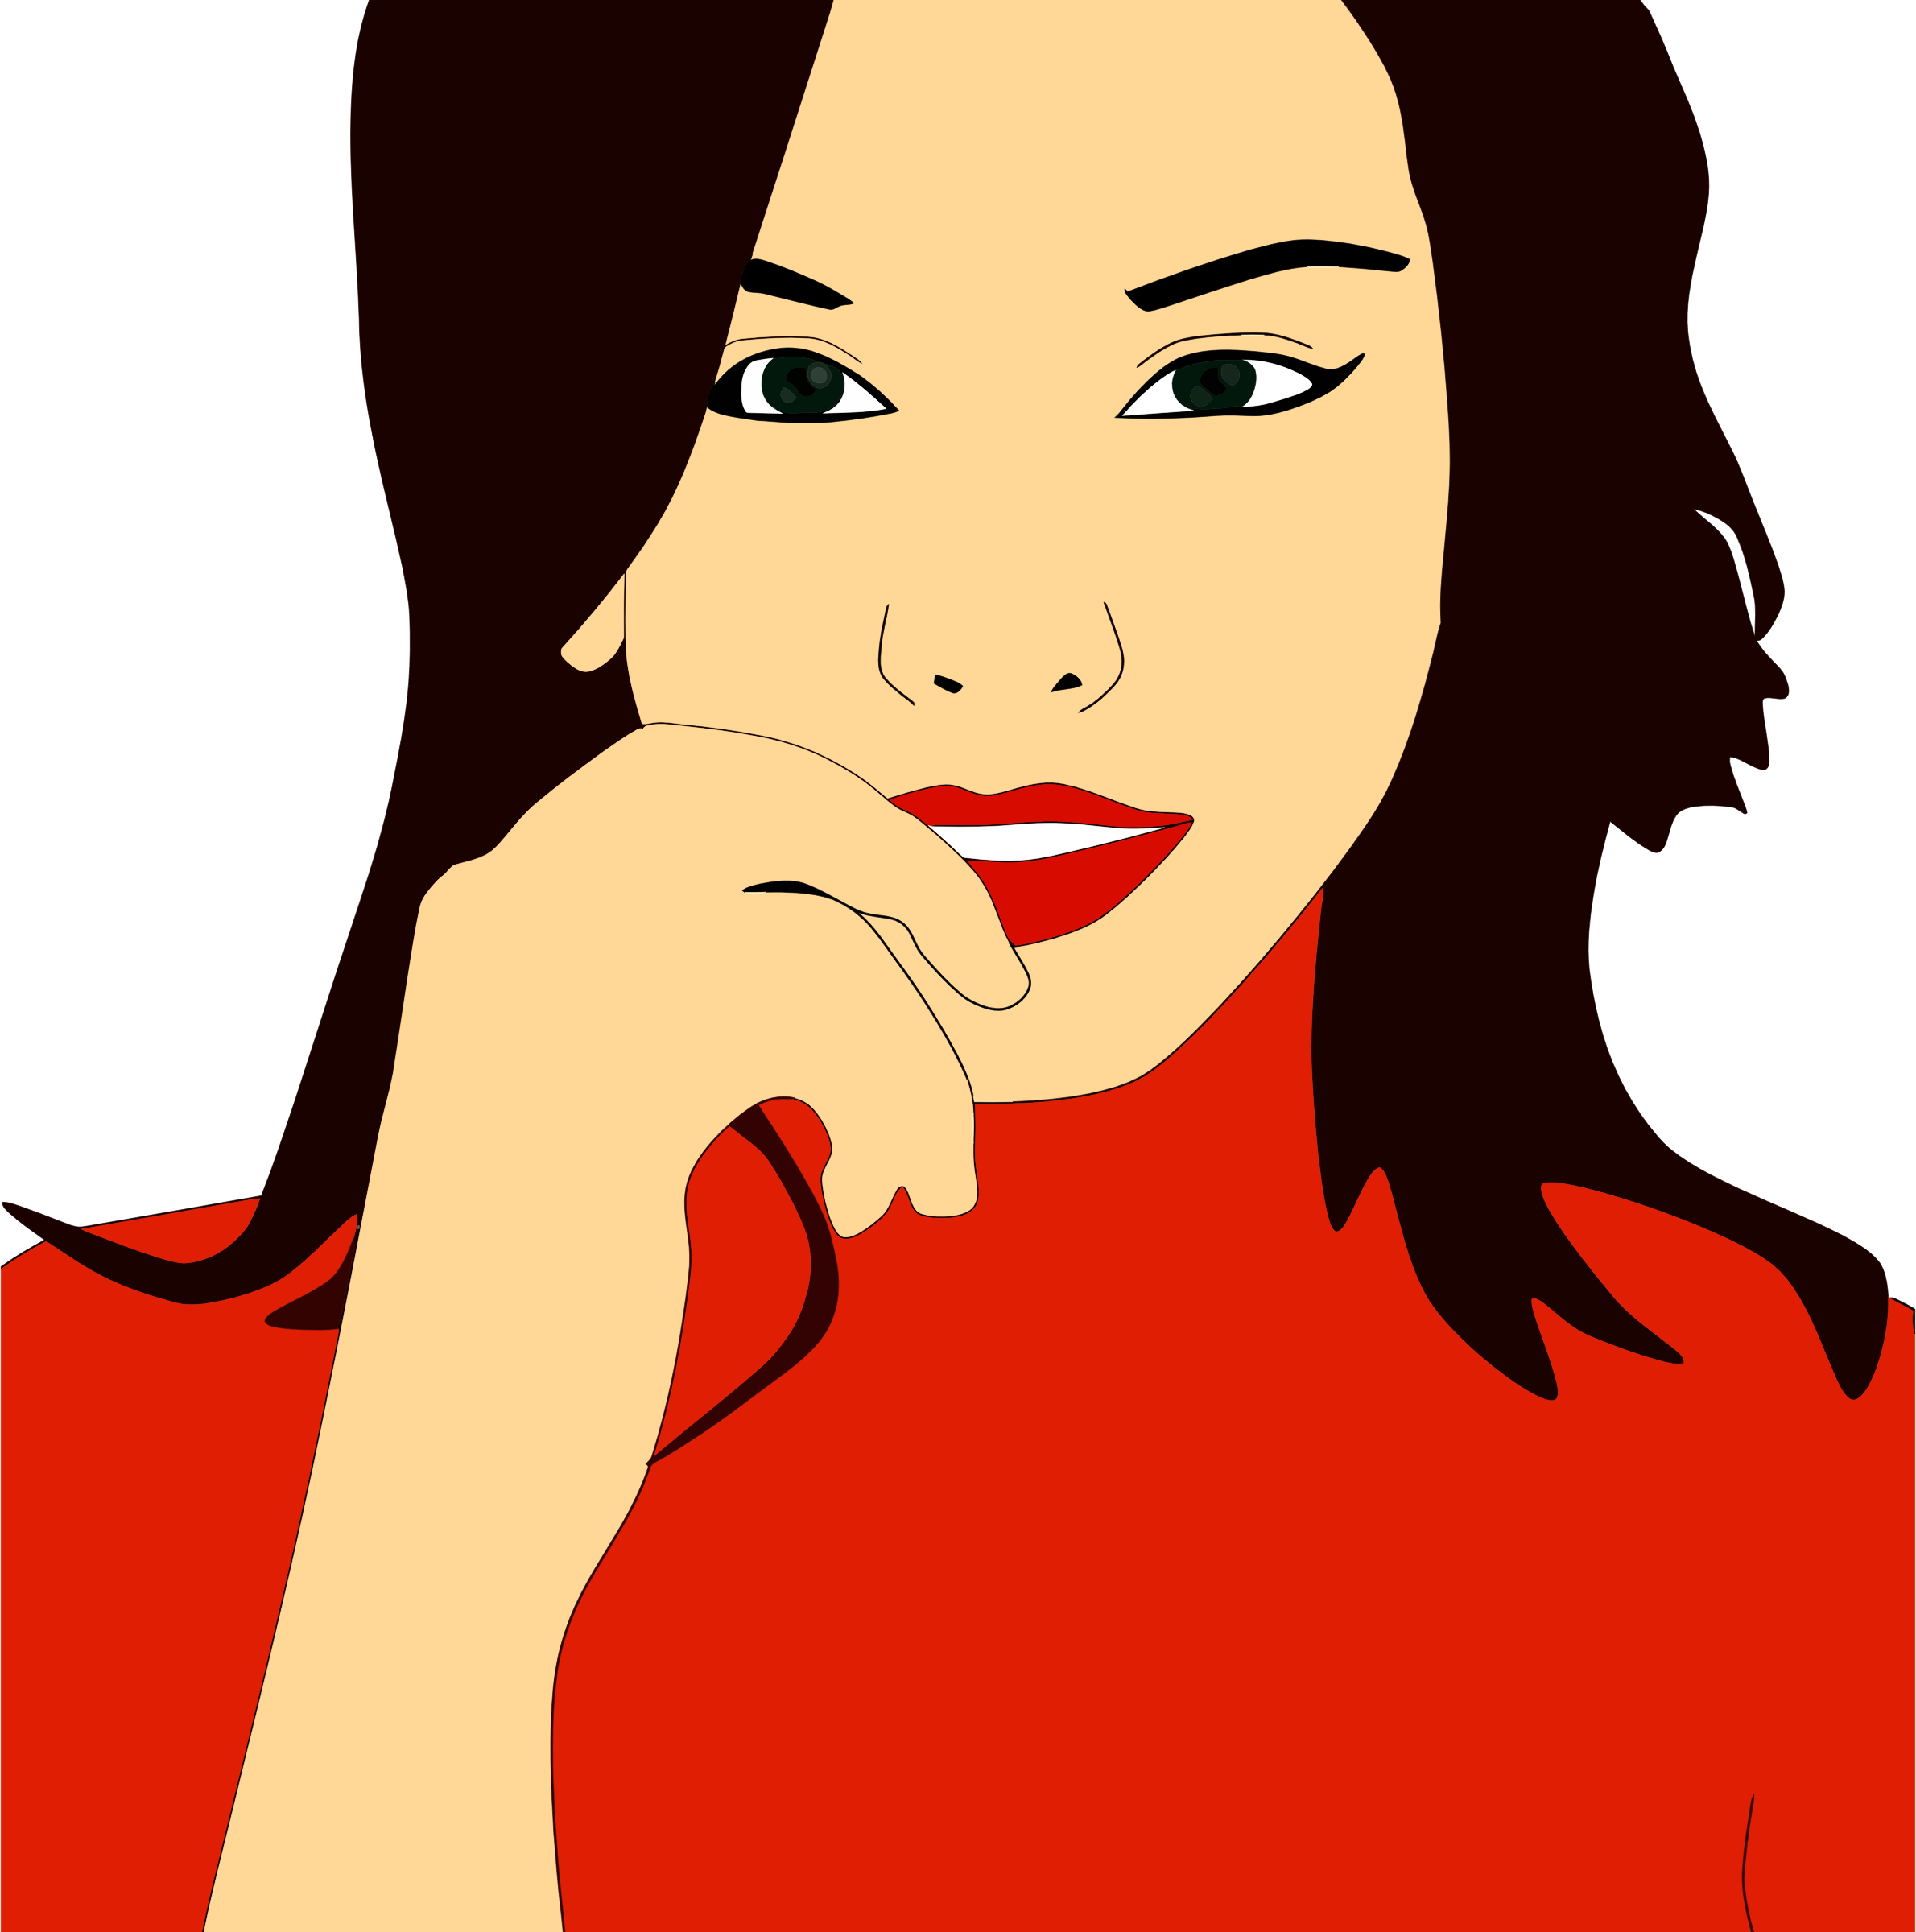 Red Lipstick Woman Portrait by GDJ